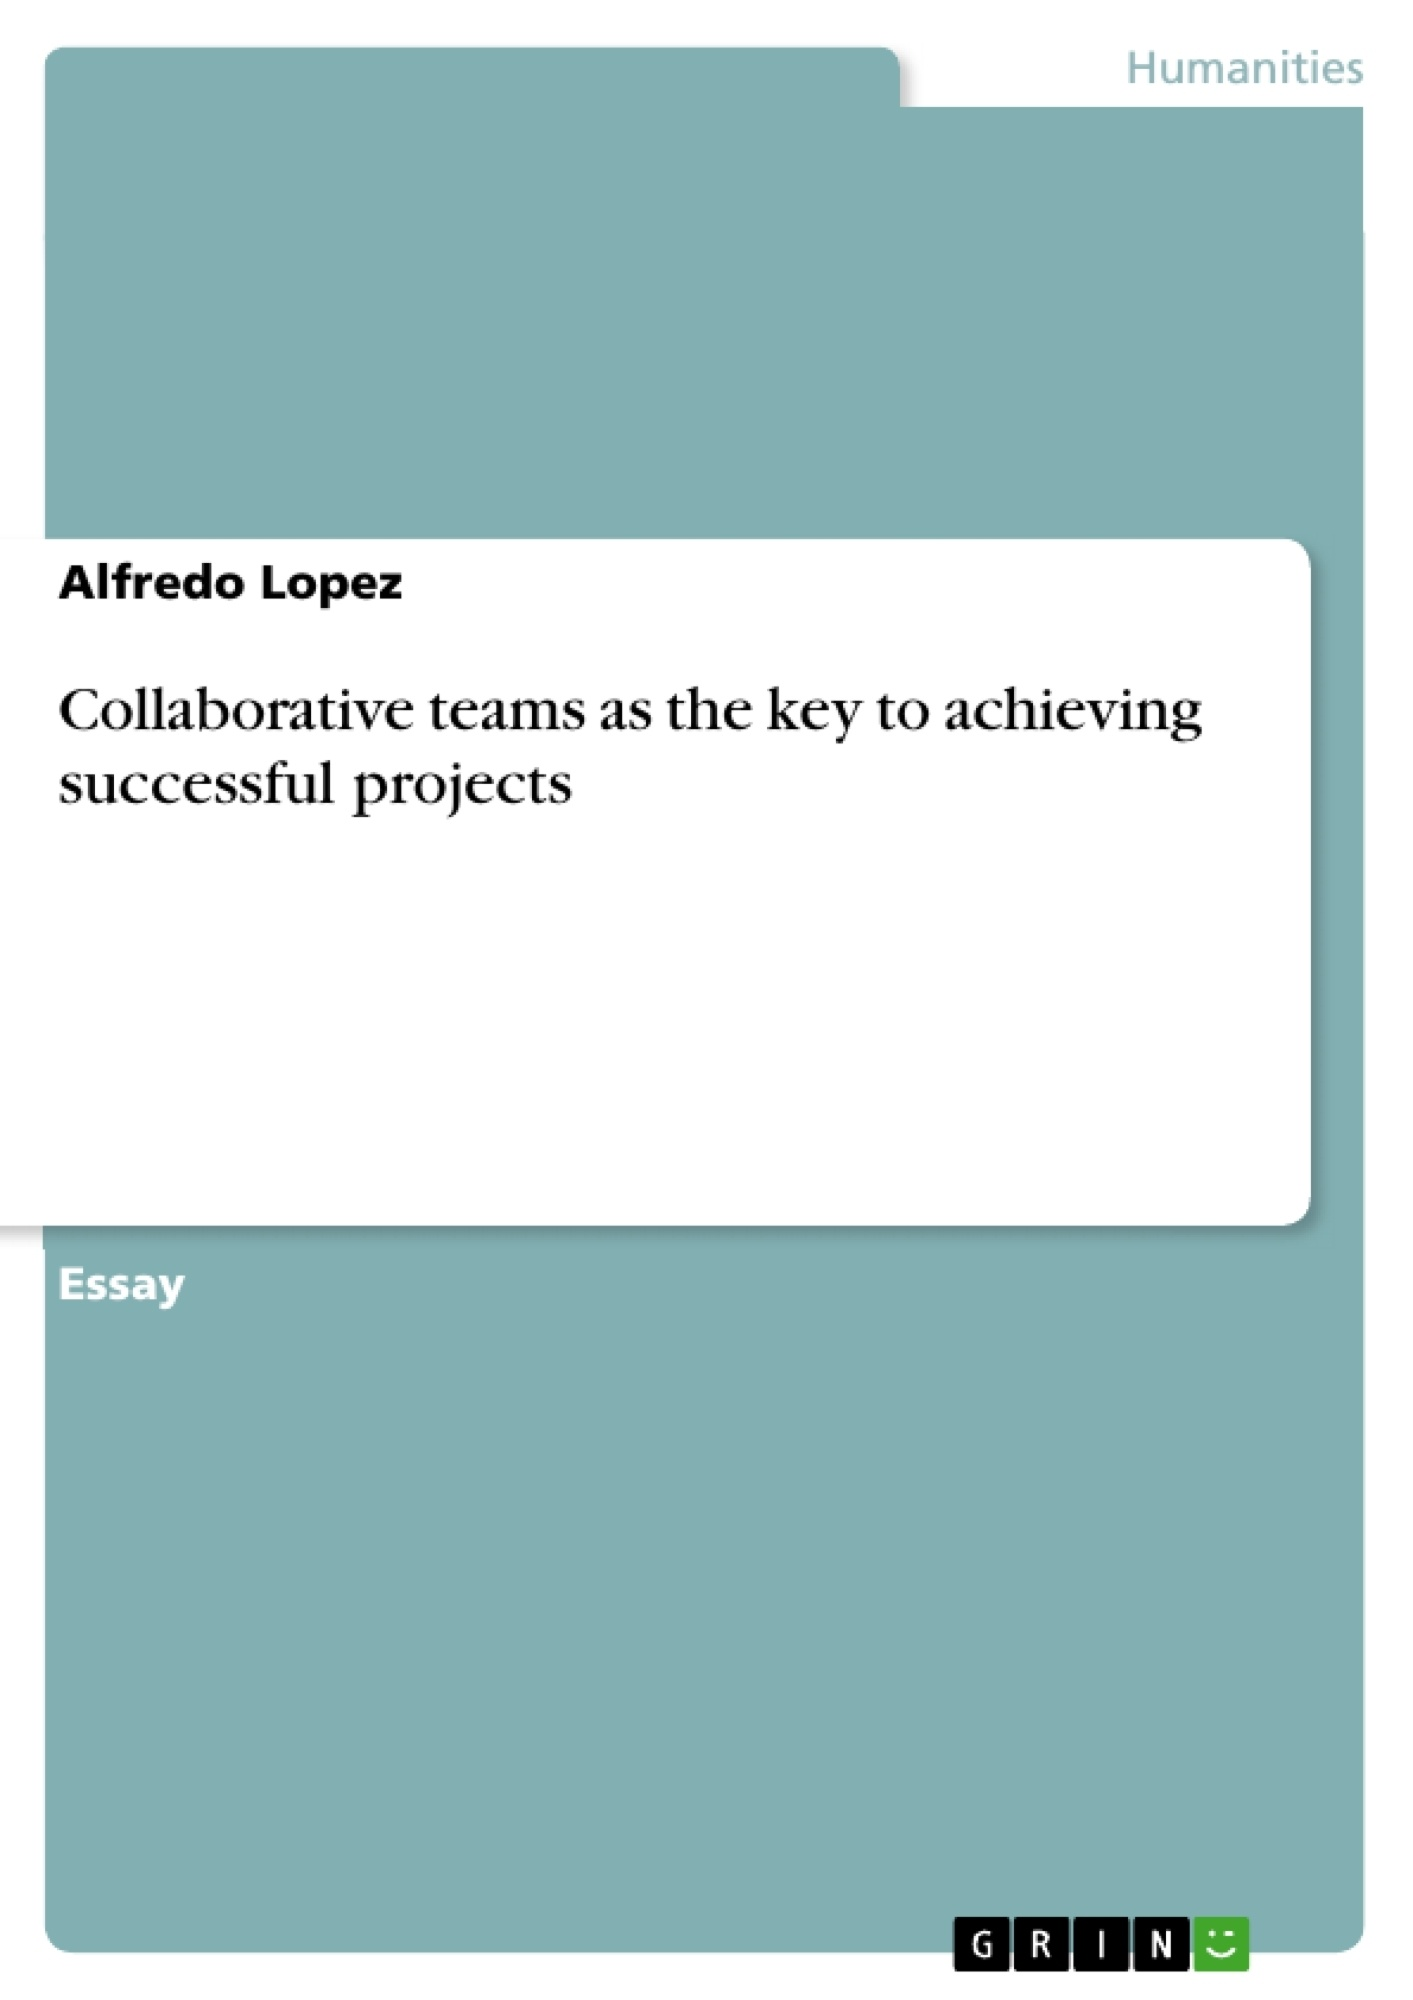 Title: Collaborative teams as the key to achieving successful projects